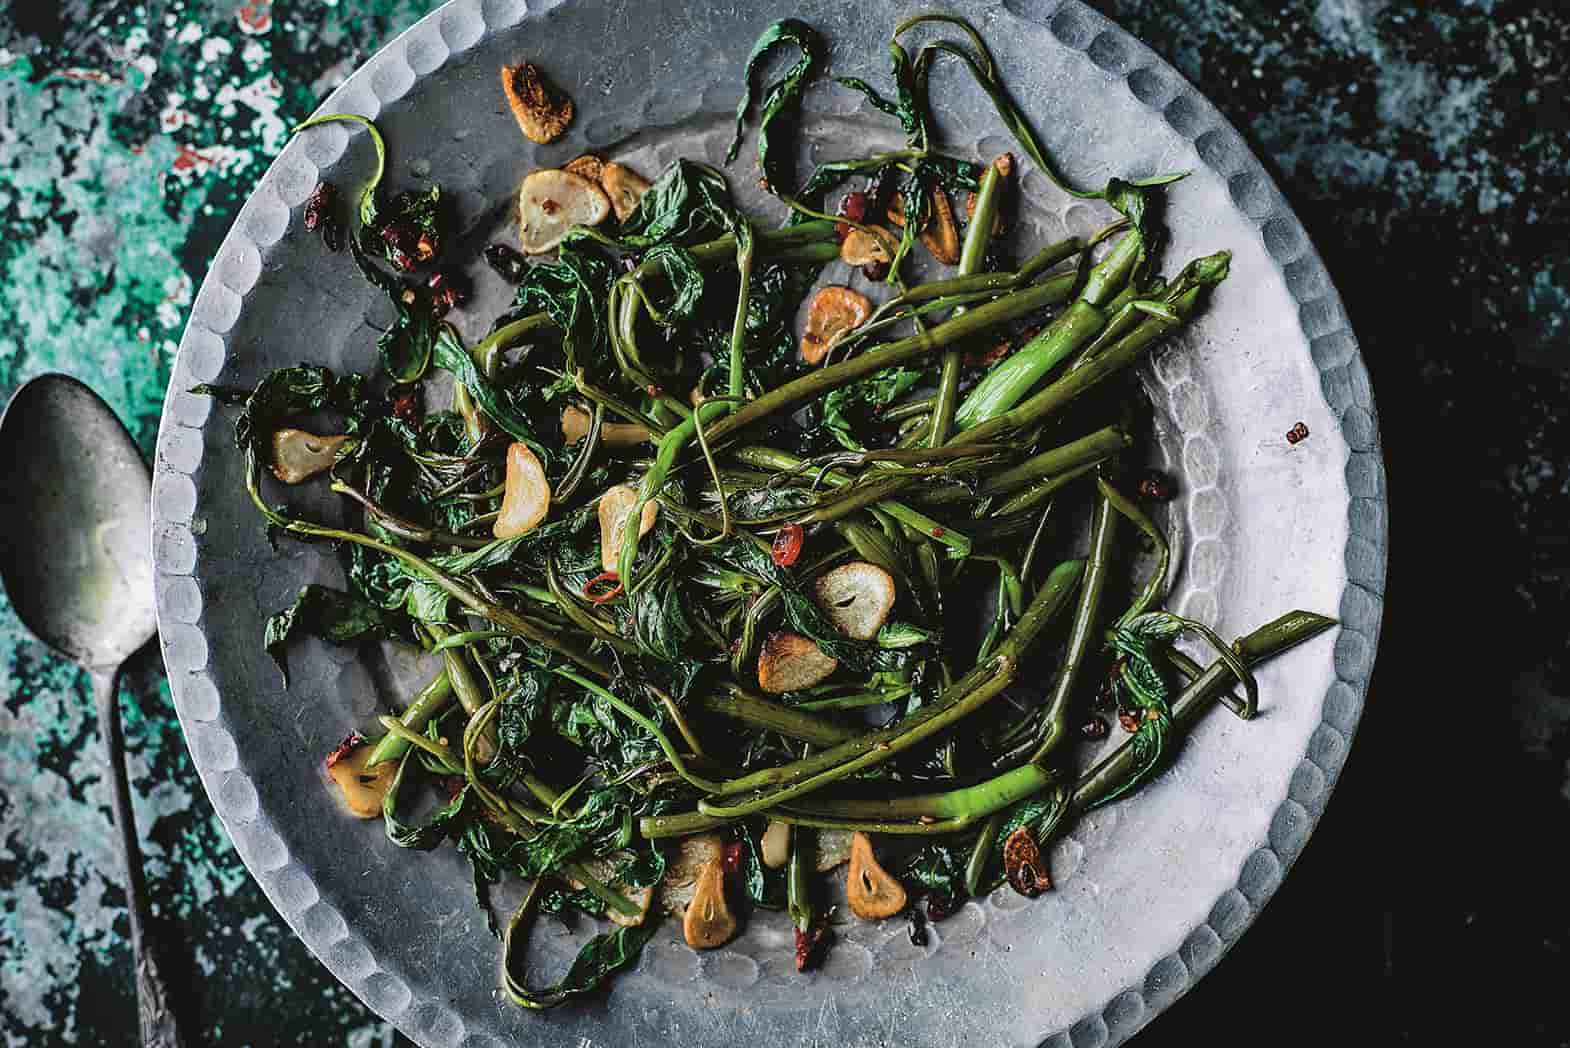 Stir-Fried Morning Glory In a Grey Bowl